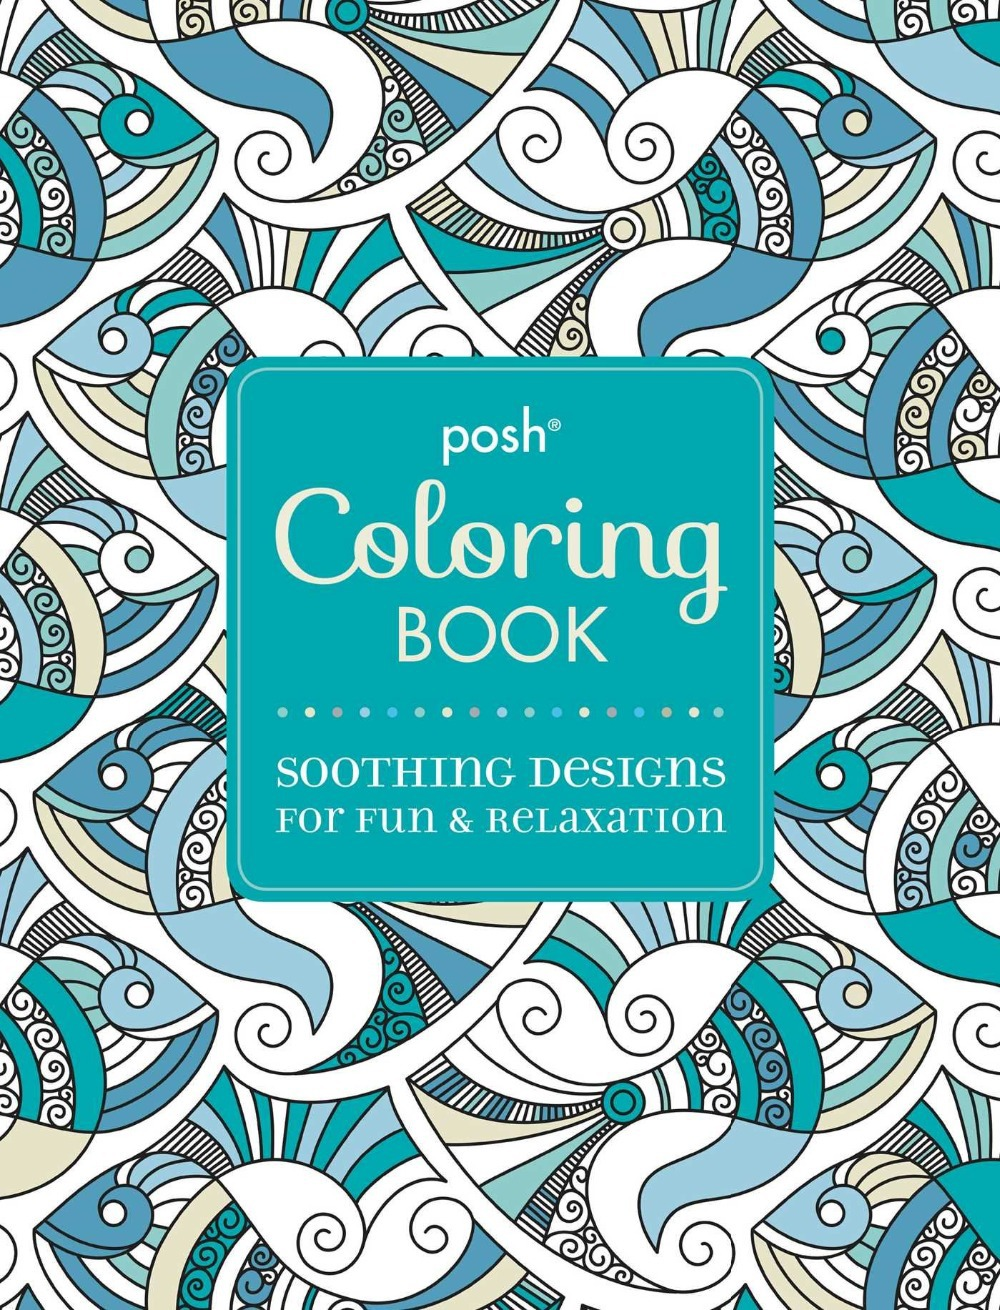 Posh coloring book soothing designs for fun and relaxation - Aliexpress Com Buy Posh Adult Coloring Book Soothing Designs For Fun And Relaxation English Antistress Coloring Coloring Books For Adults Art From